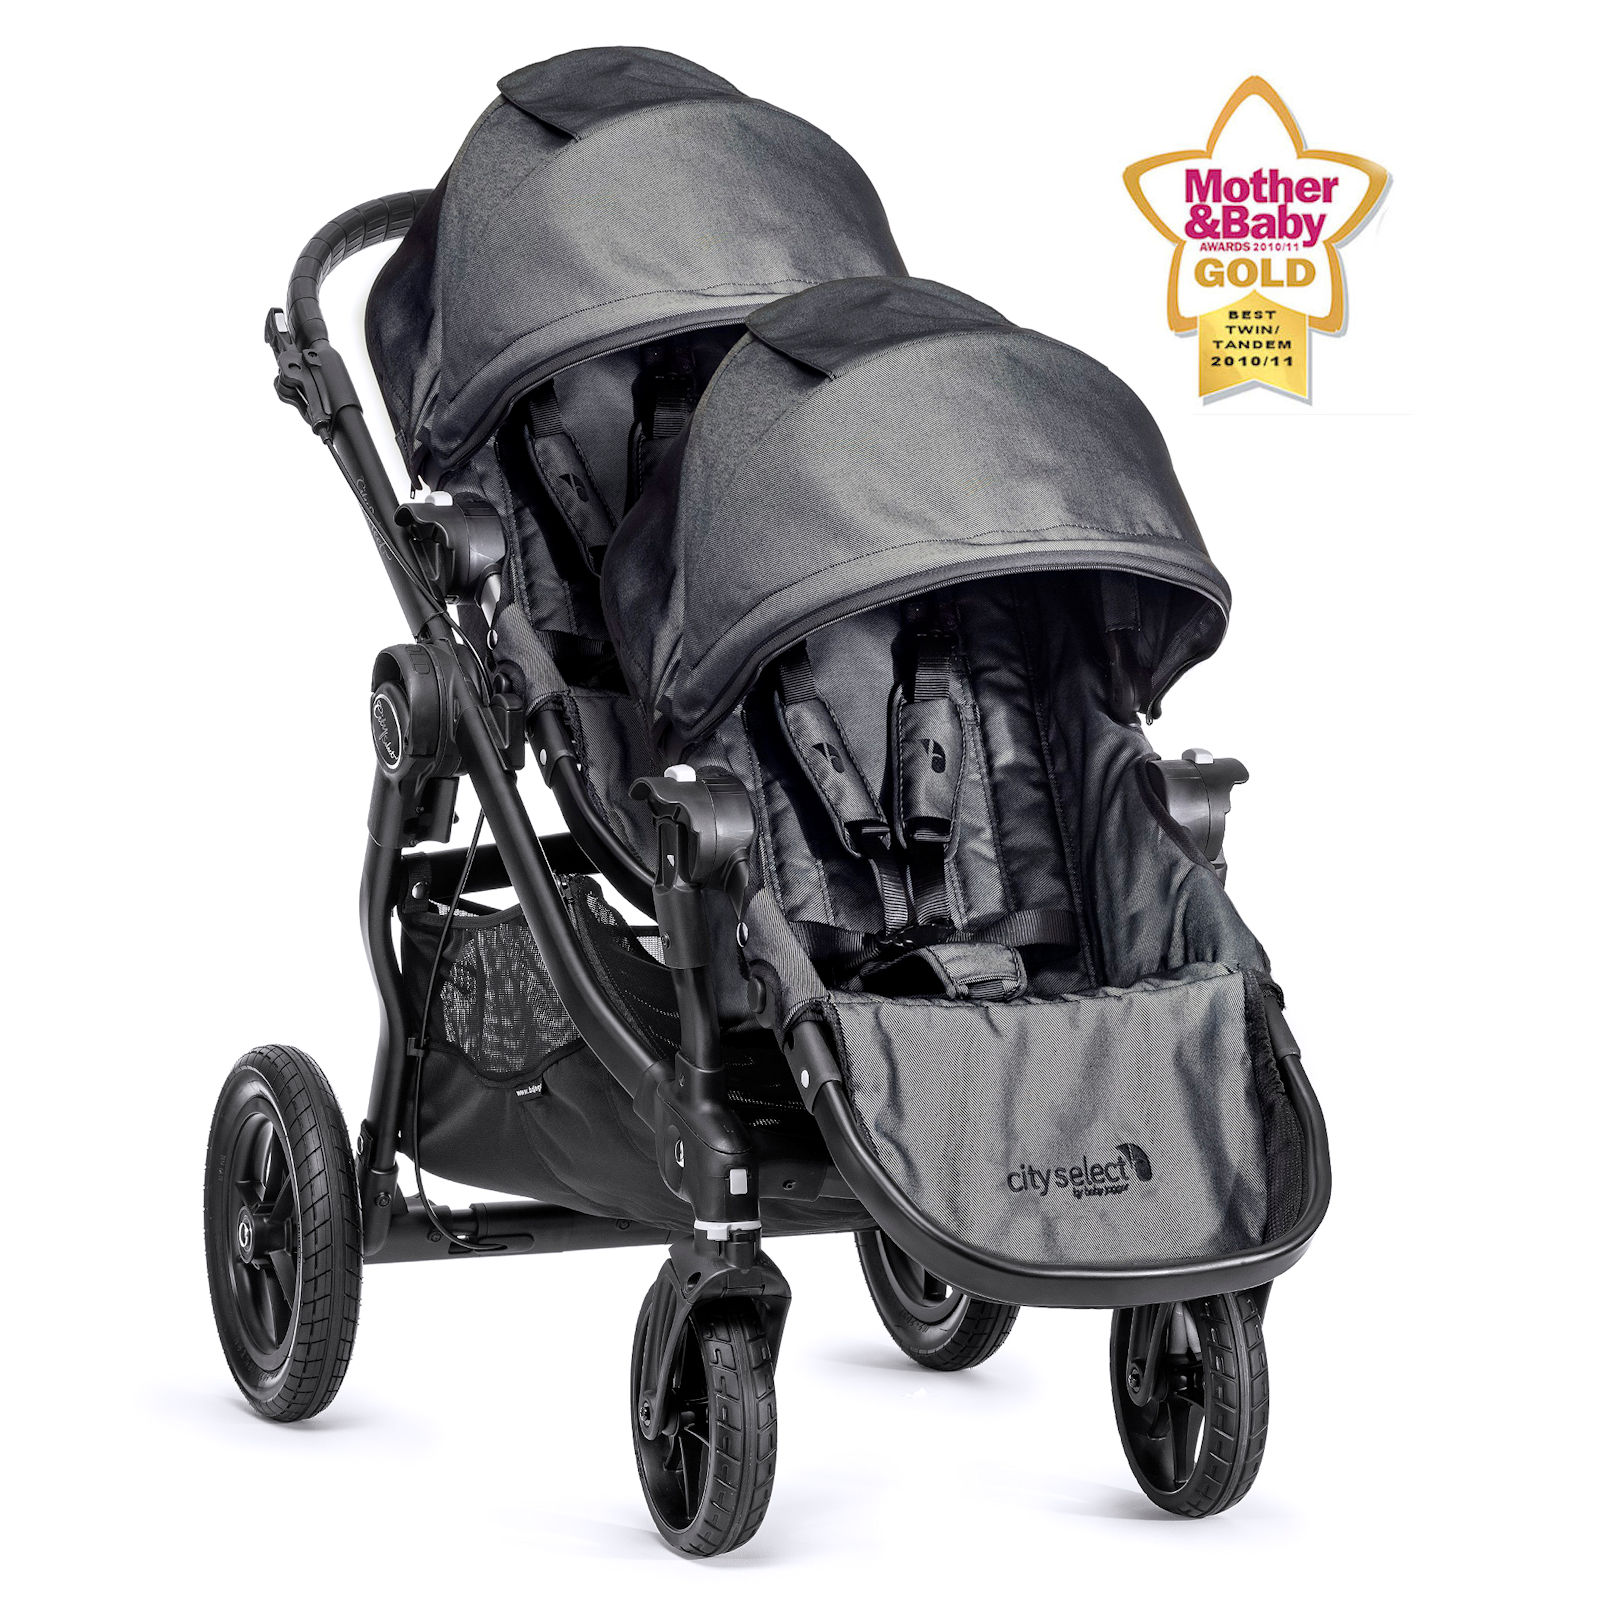 e0c2303419ca New Baby Jogger City Select Tandem Stroller - Charcoal Denim